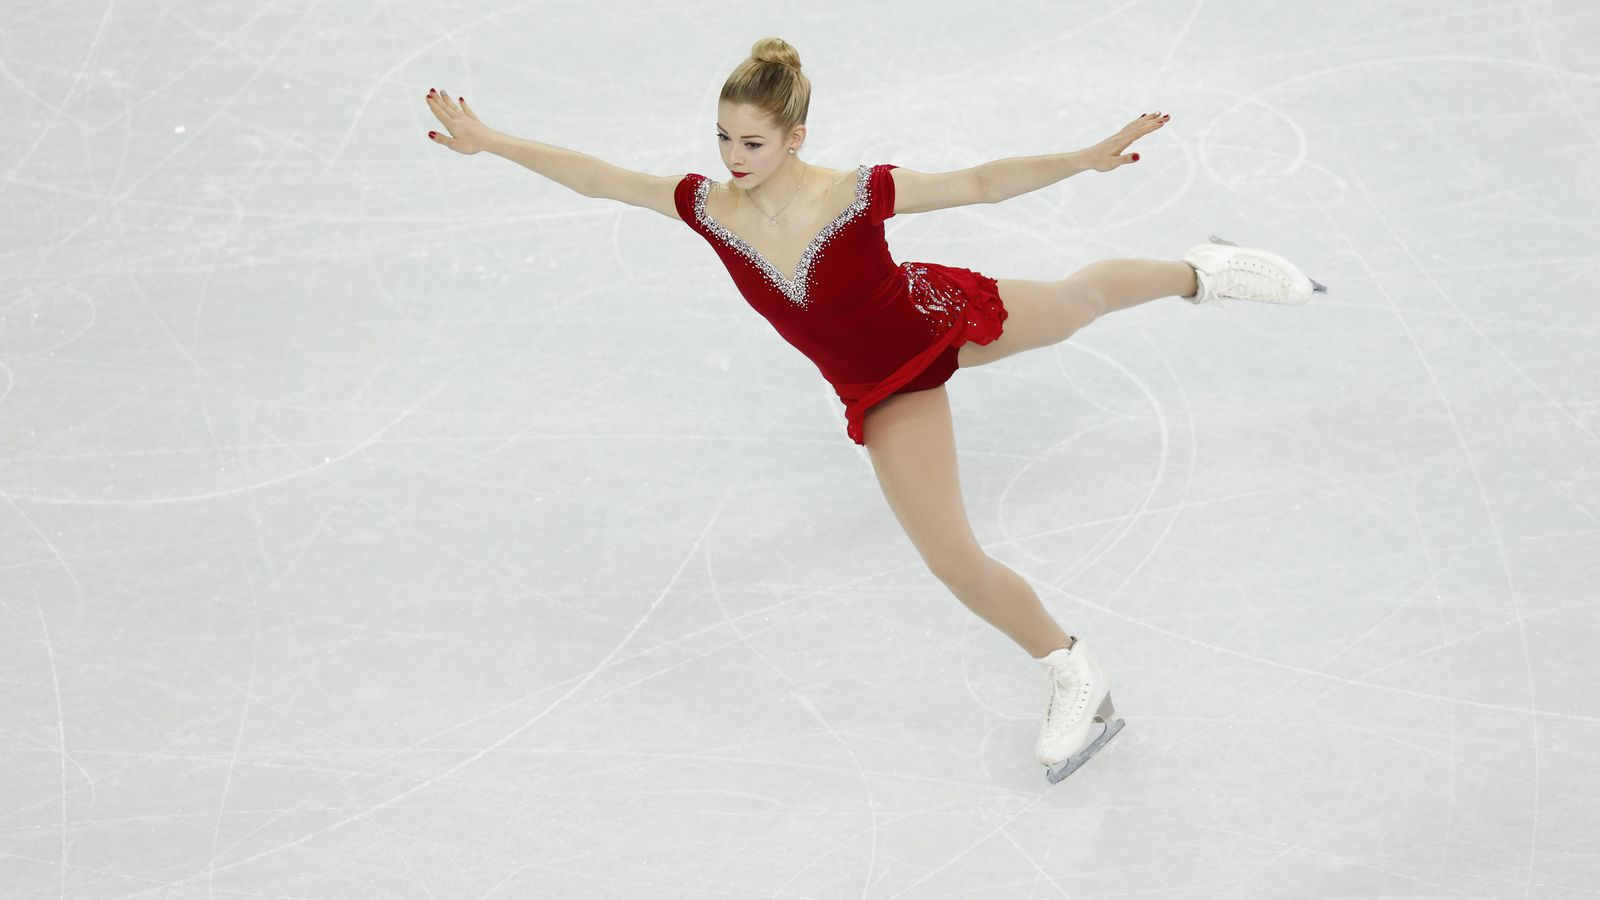 Sochi 2014 Olympic figure skating results: Gracie Gold ...